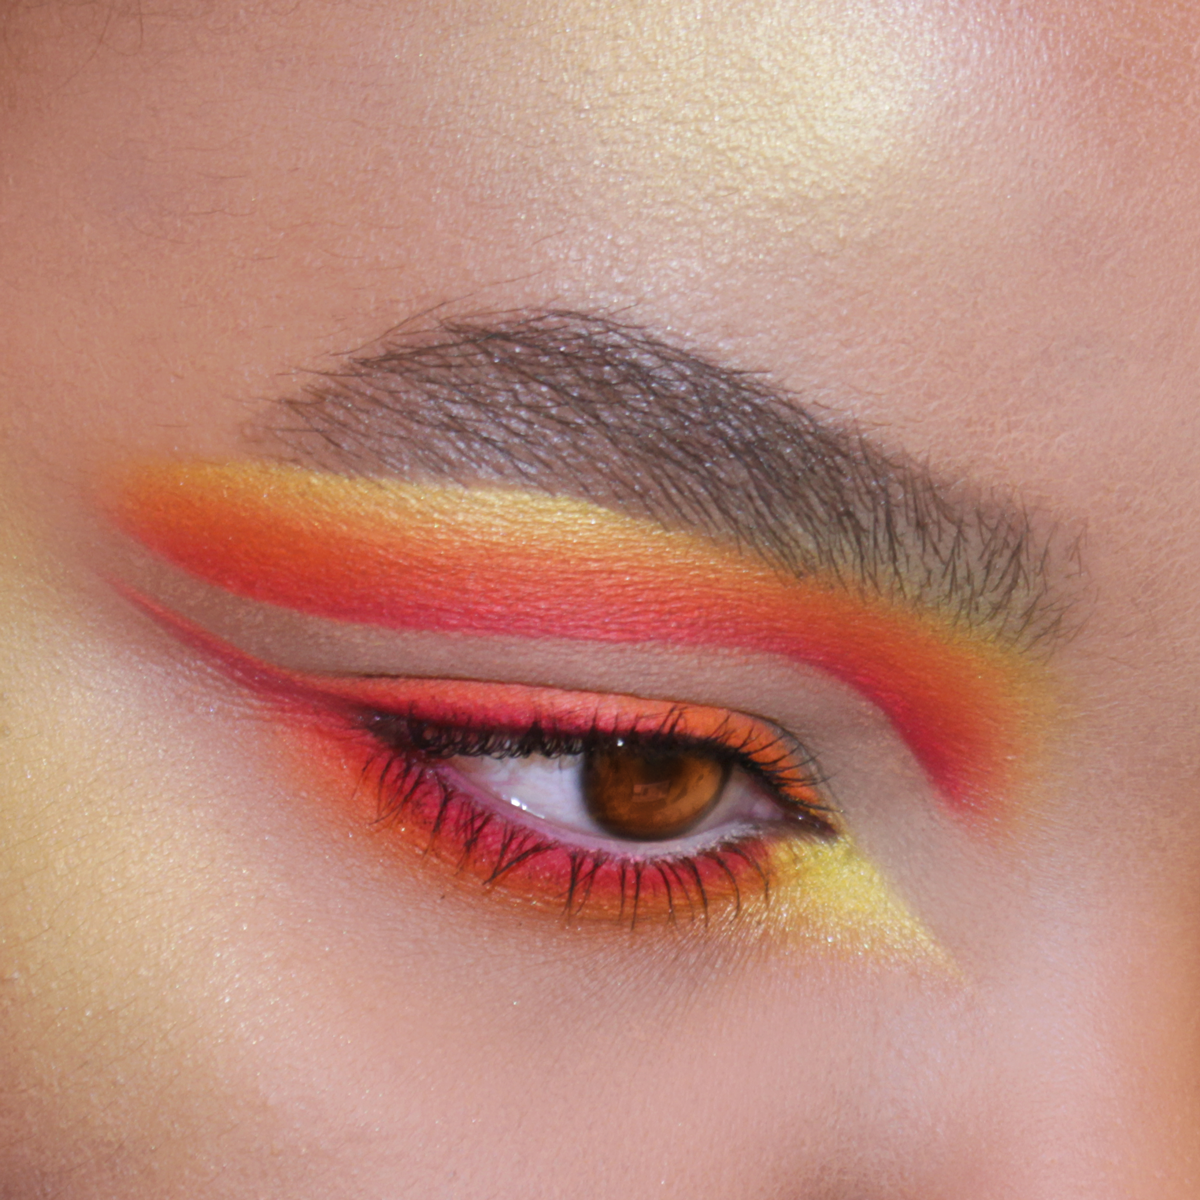 Dramatic Red Eye Makeup, Cut Crease Makeup, Yellow Makeup